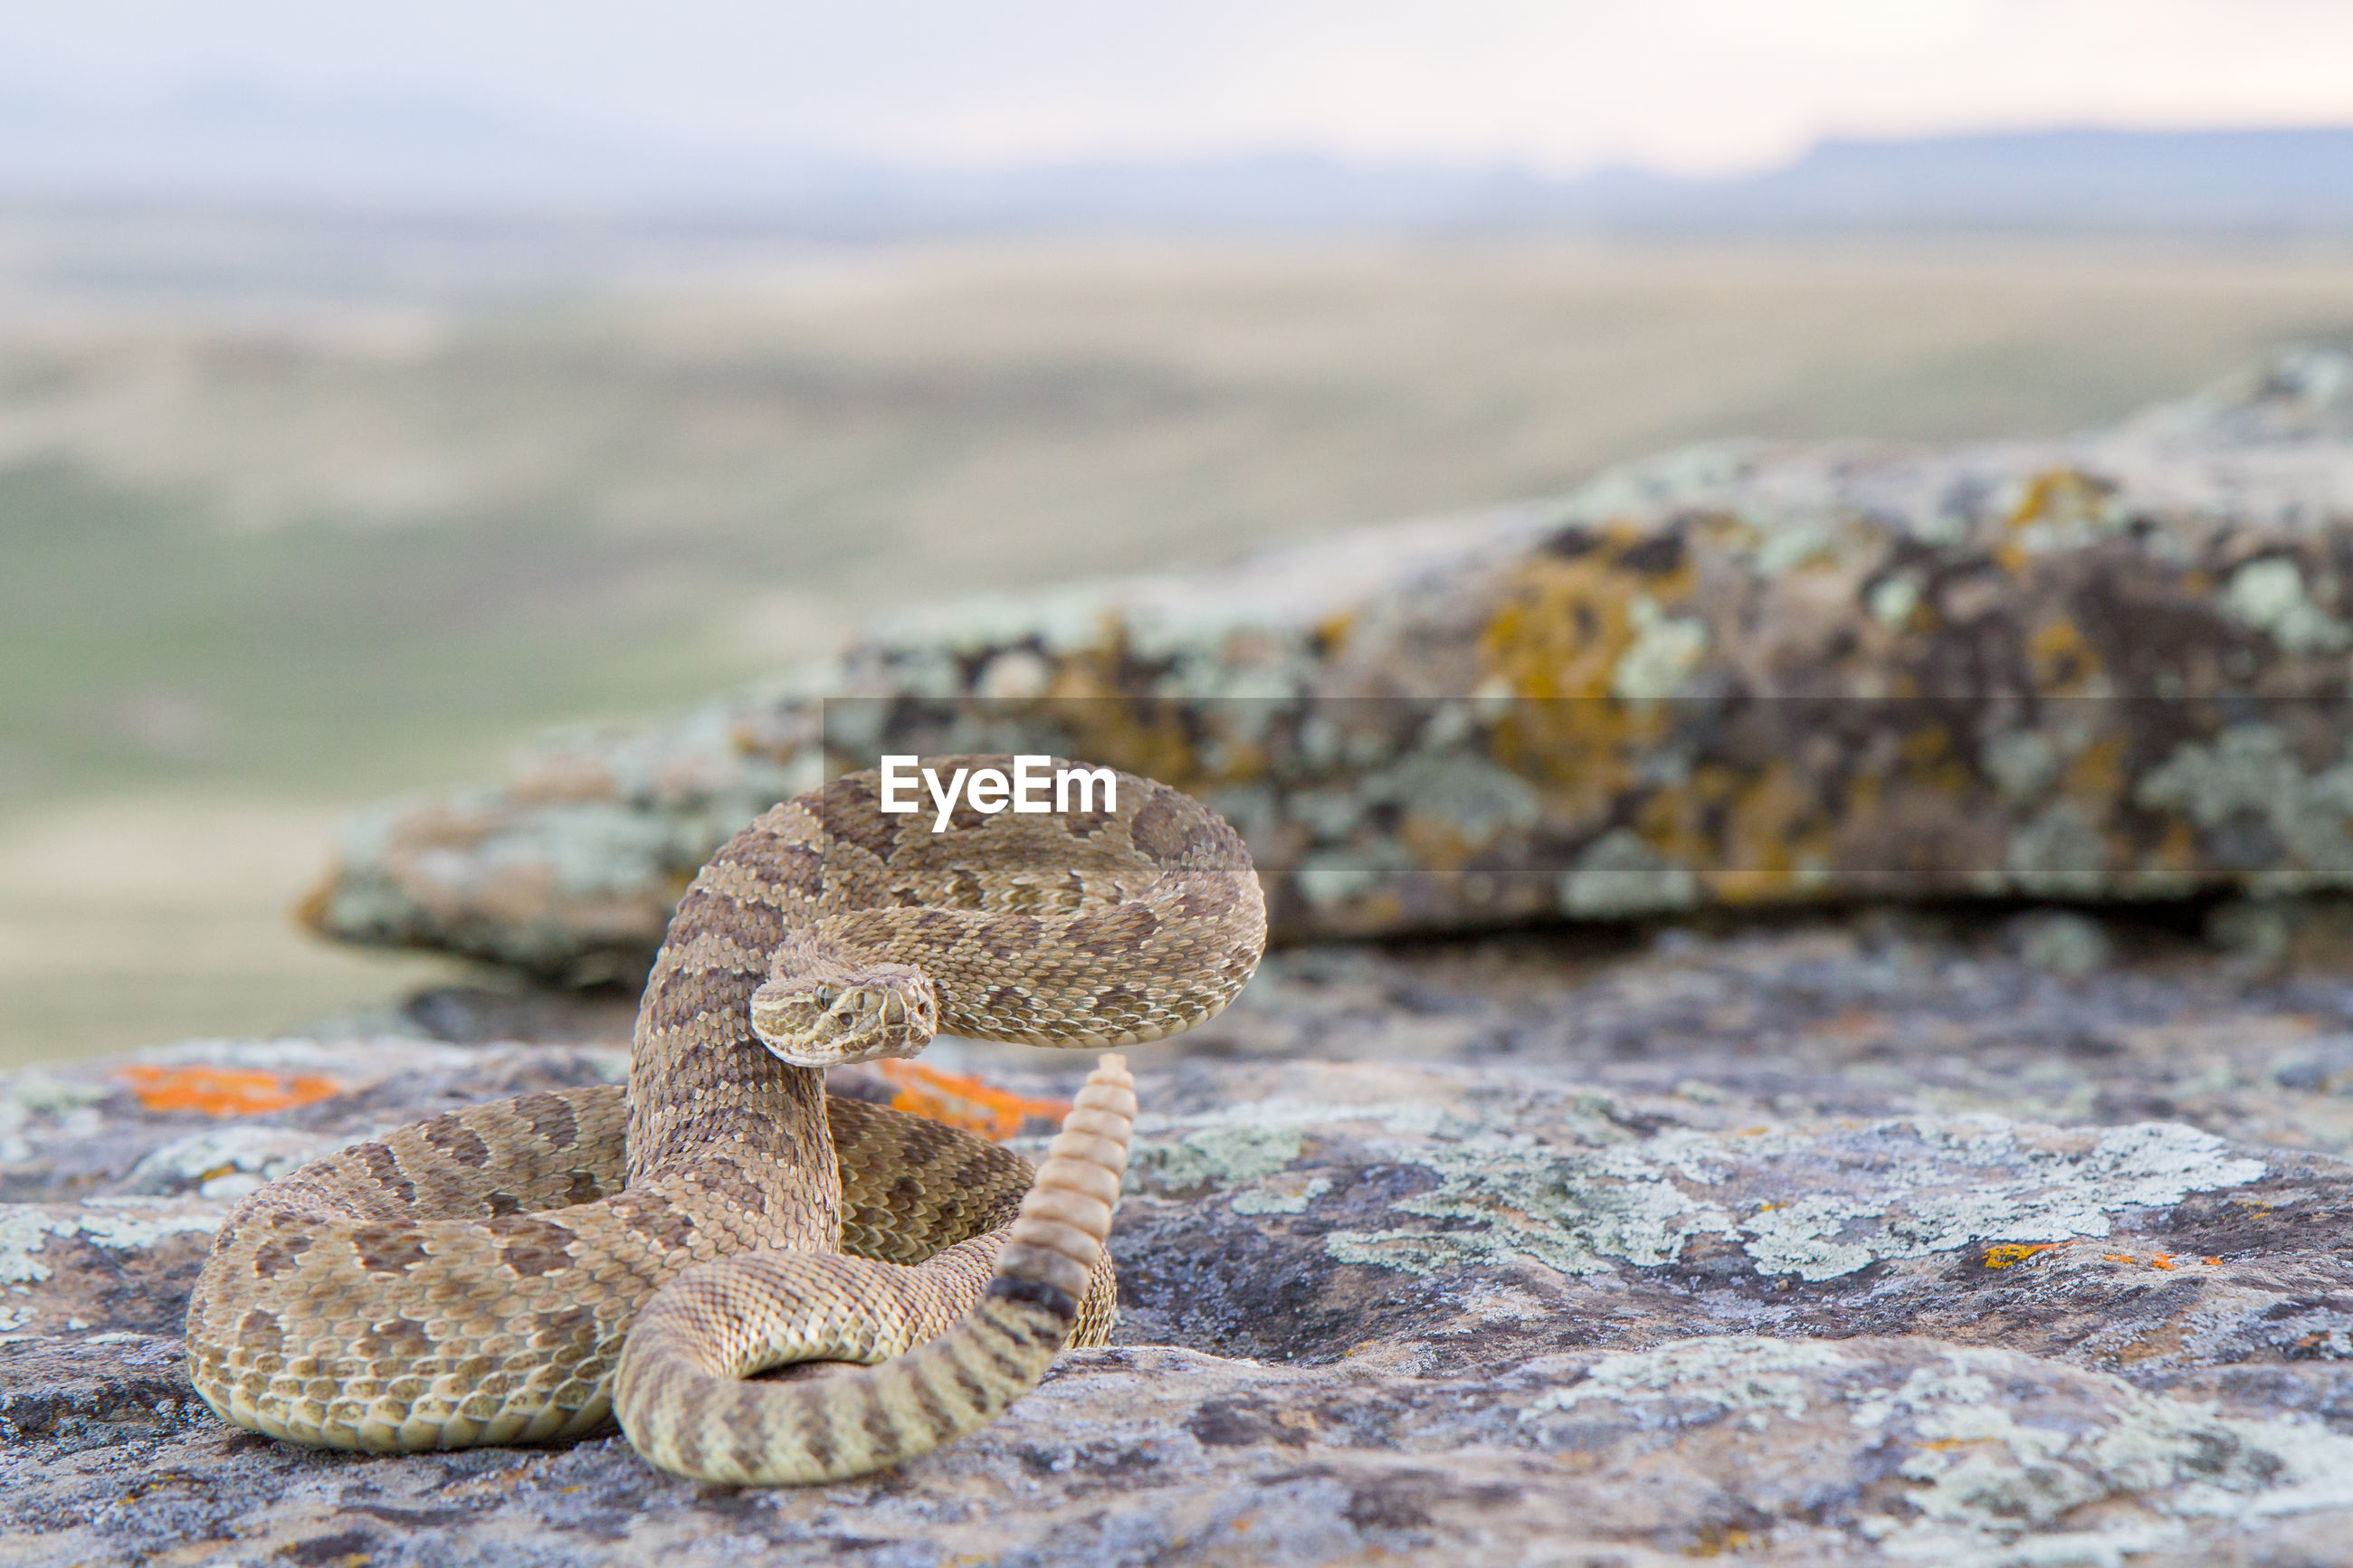 Close-up of snake on rock